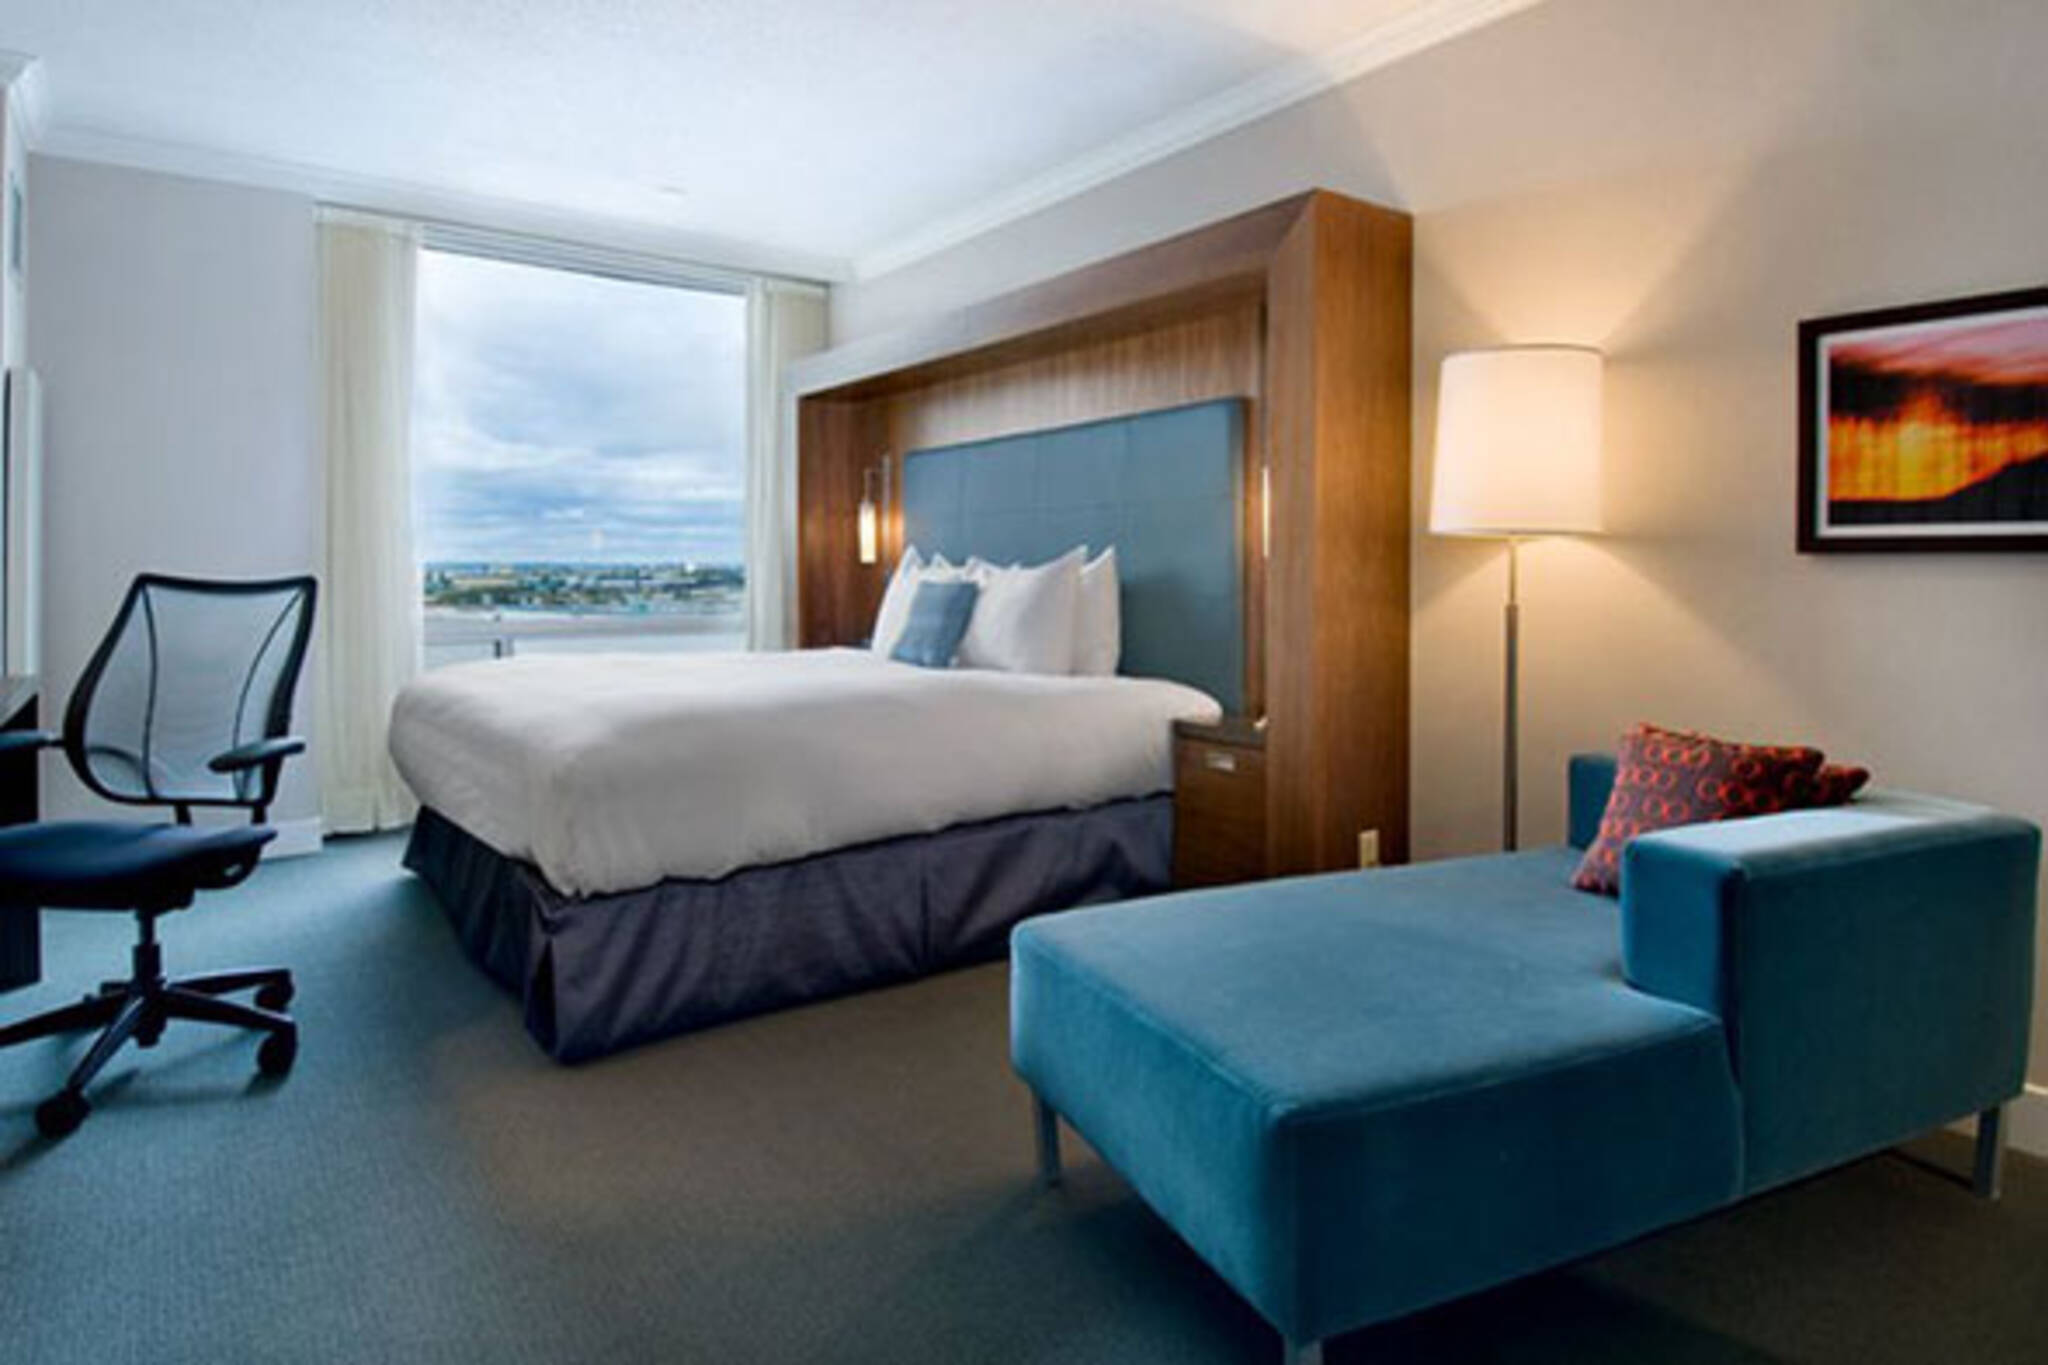 hilton toronto airport hotel and suites